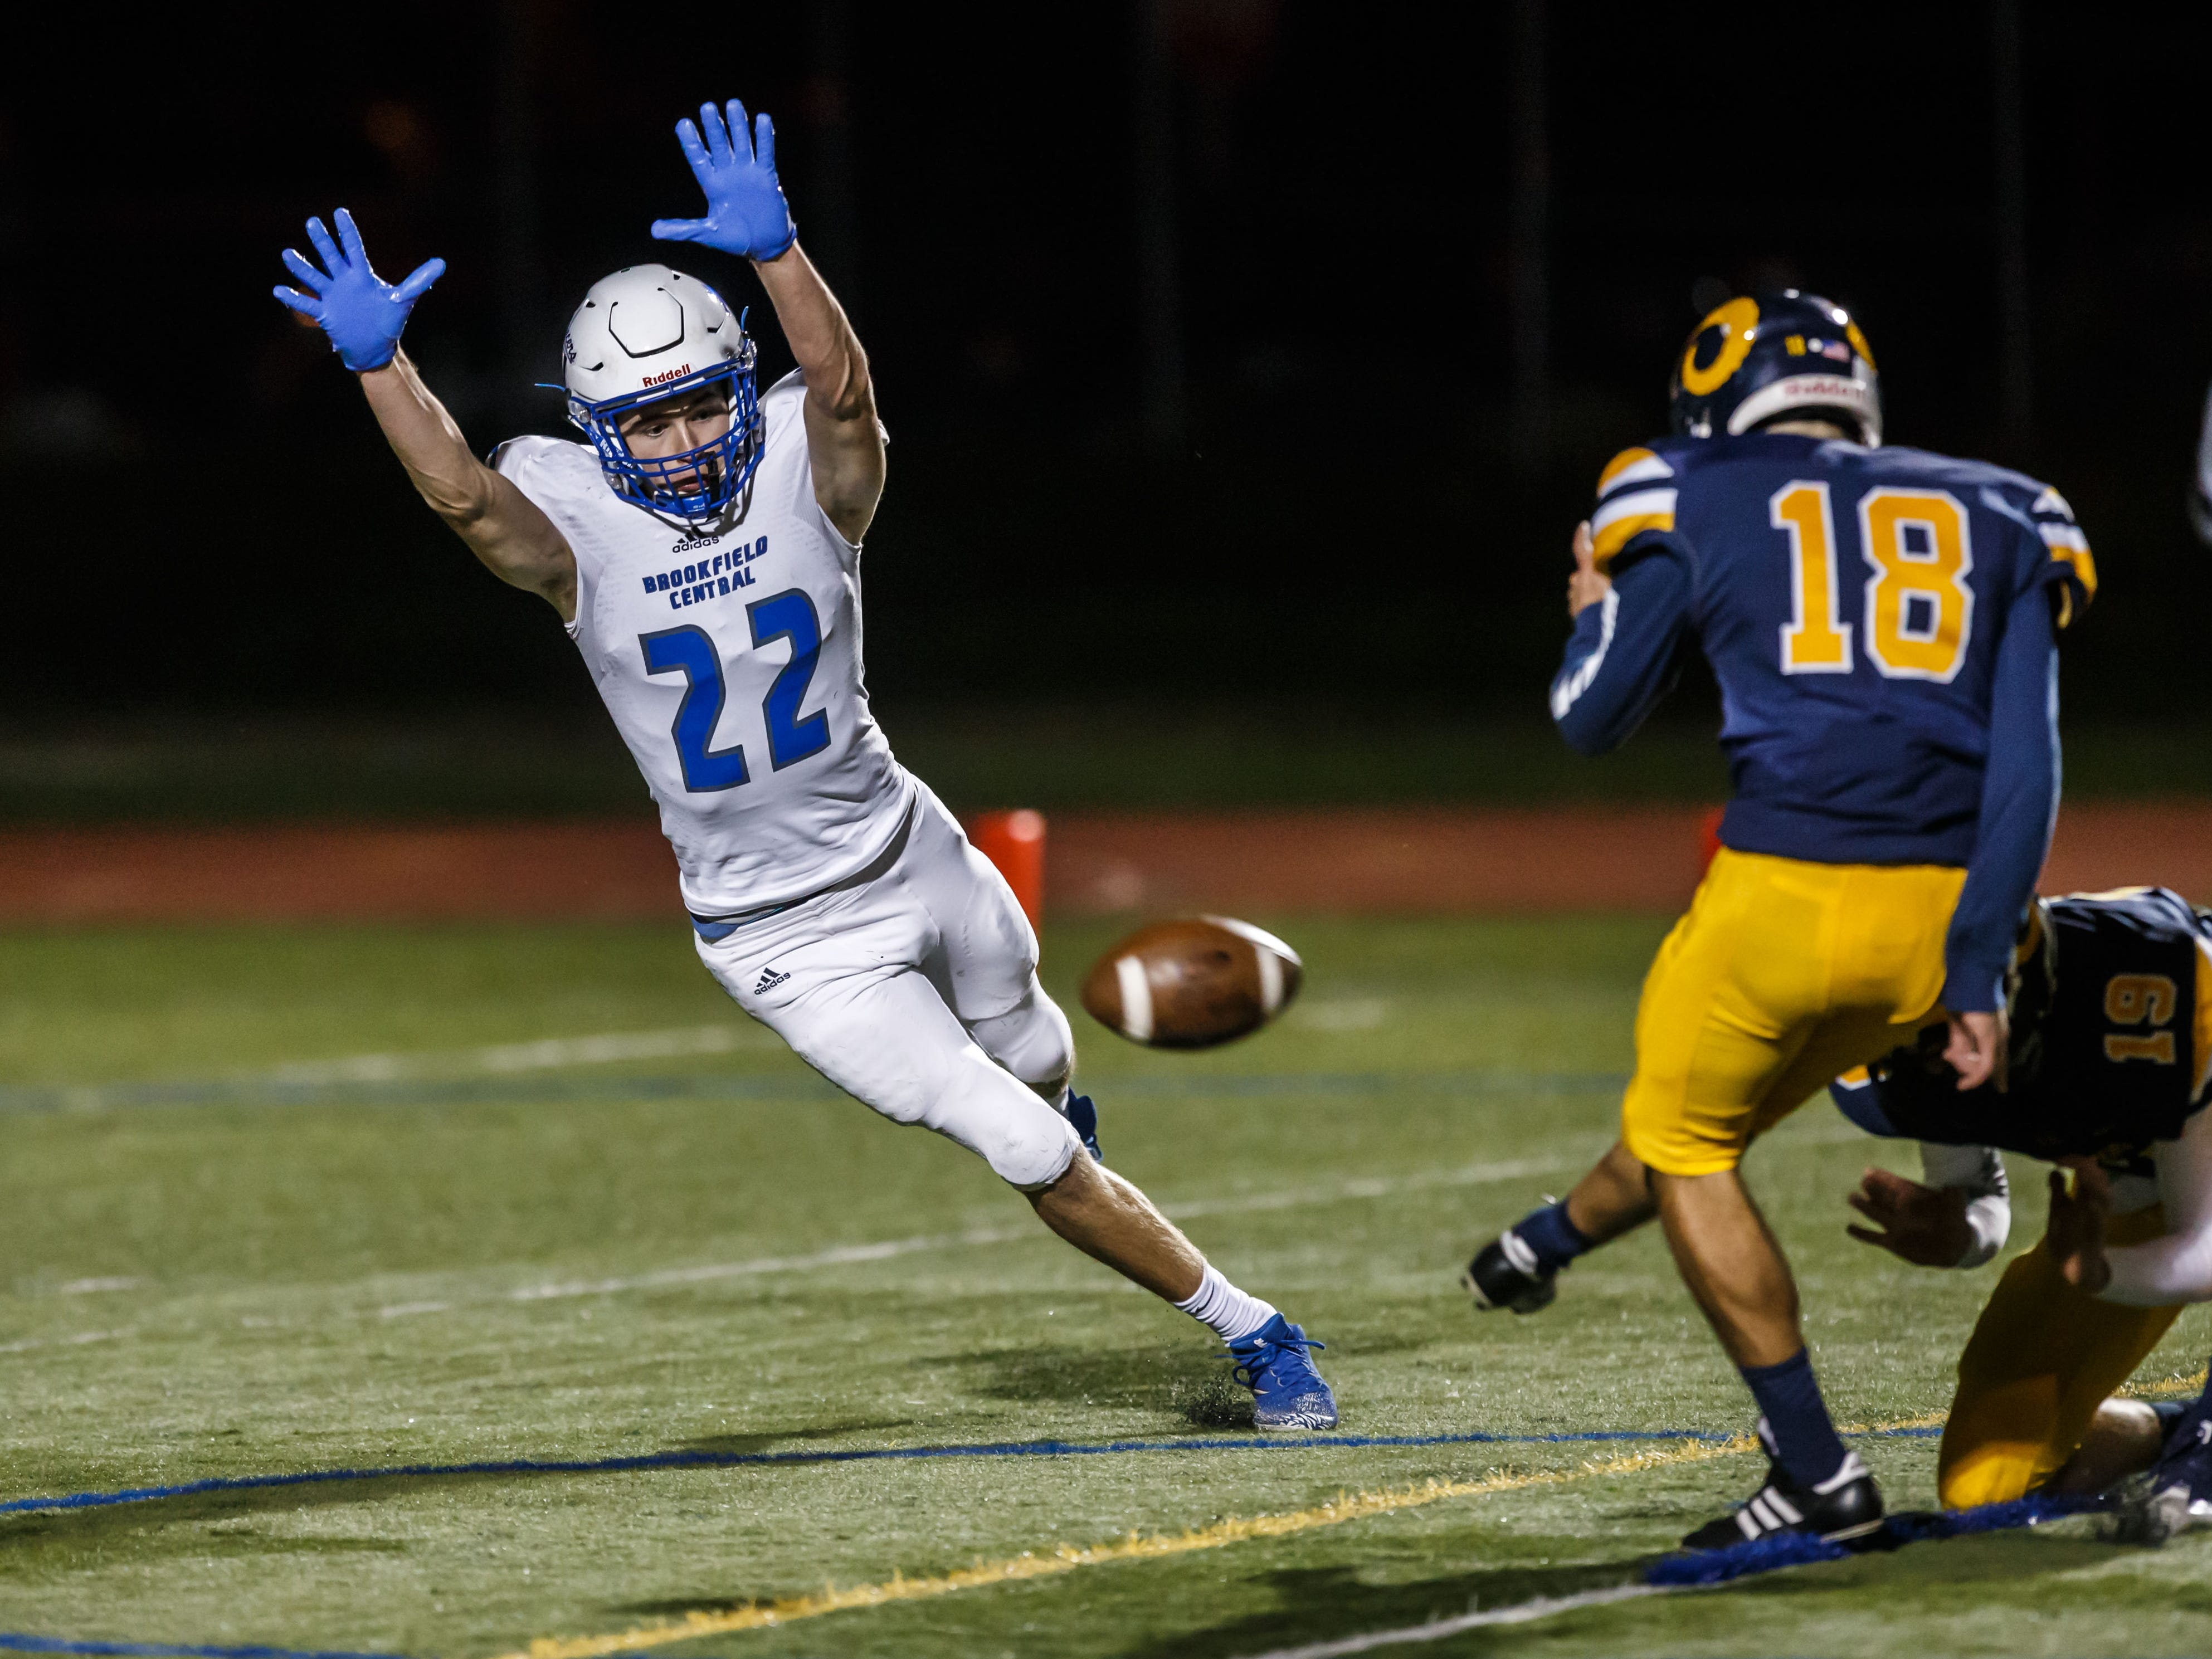 Brookfield Central defensive back Joey Cleary (22) attempts to block a PAT during the game against Marquette at Hart Park on Friday, Sept. 21, 2018.